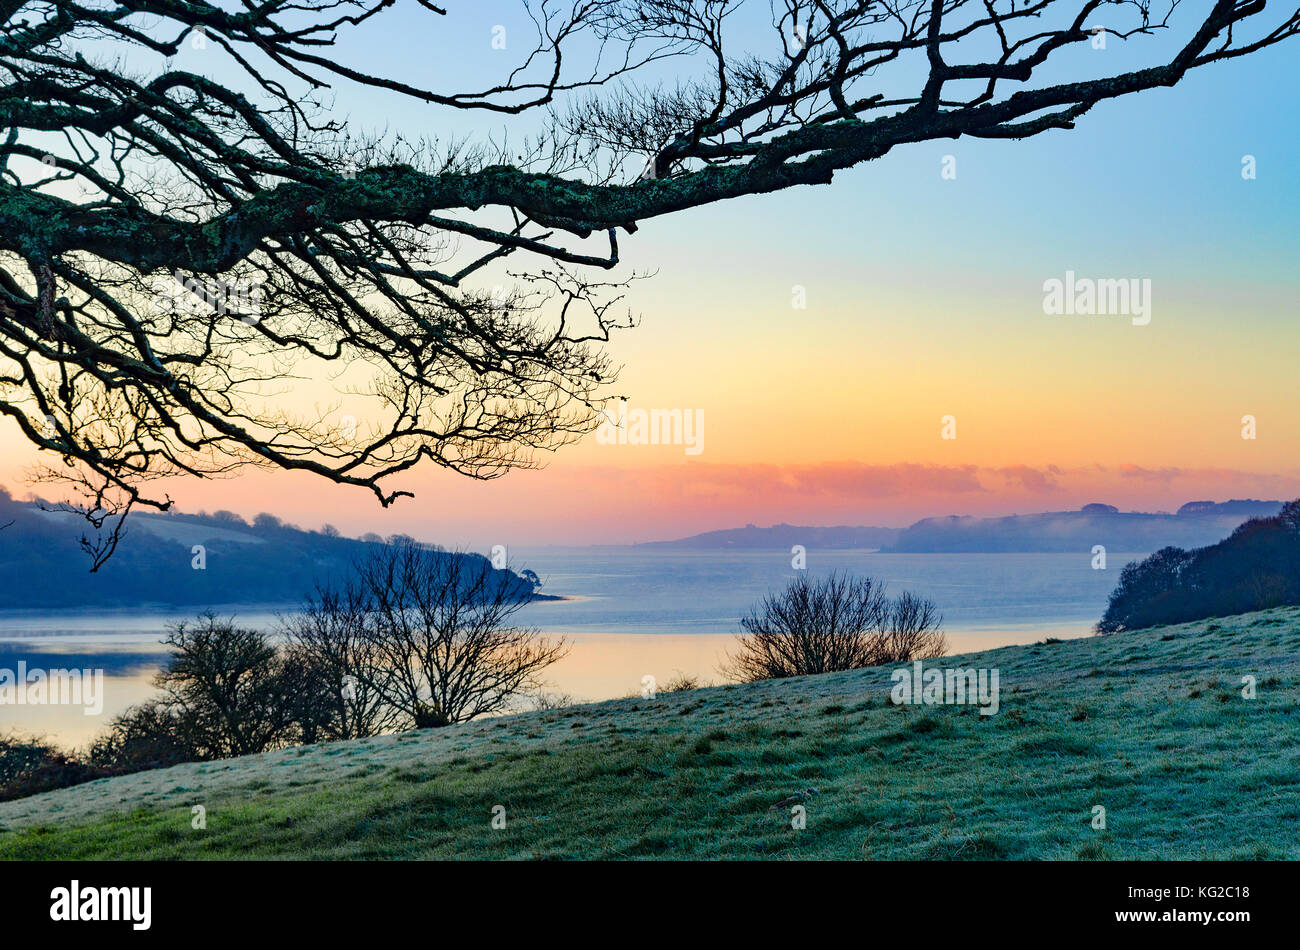 view towards the carrick roads on the river fal near truro in cornwall, england, britain, uk. - Stock Image